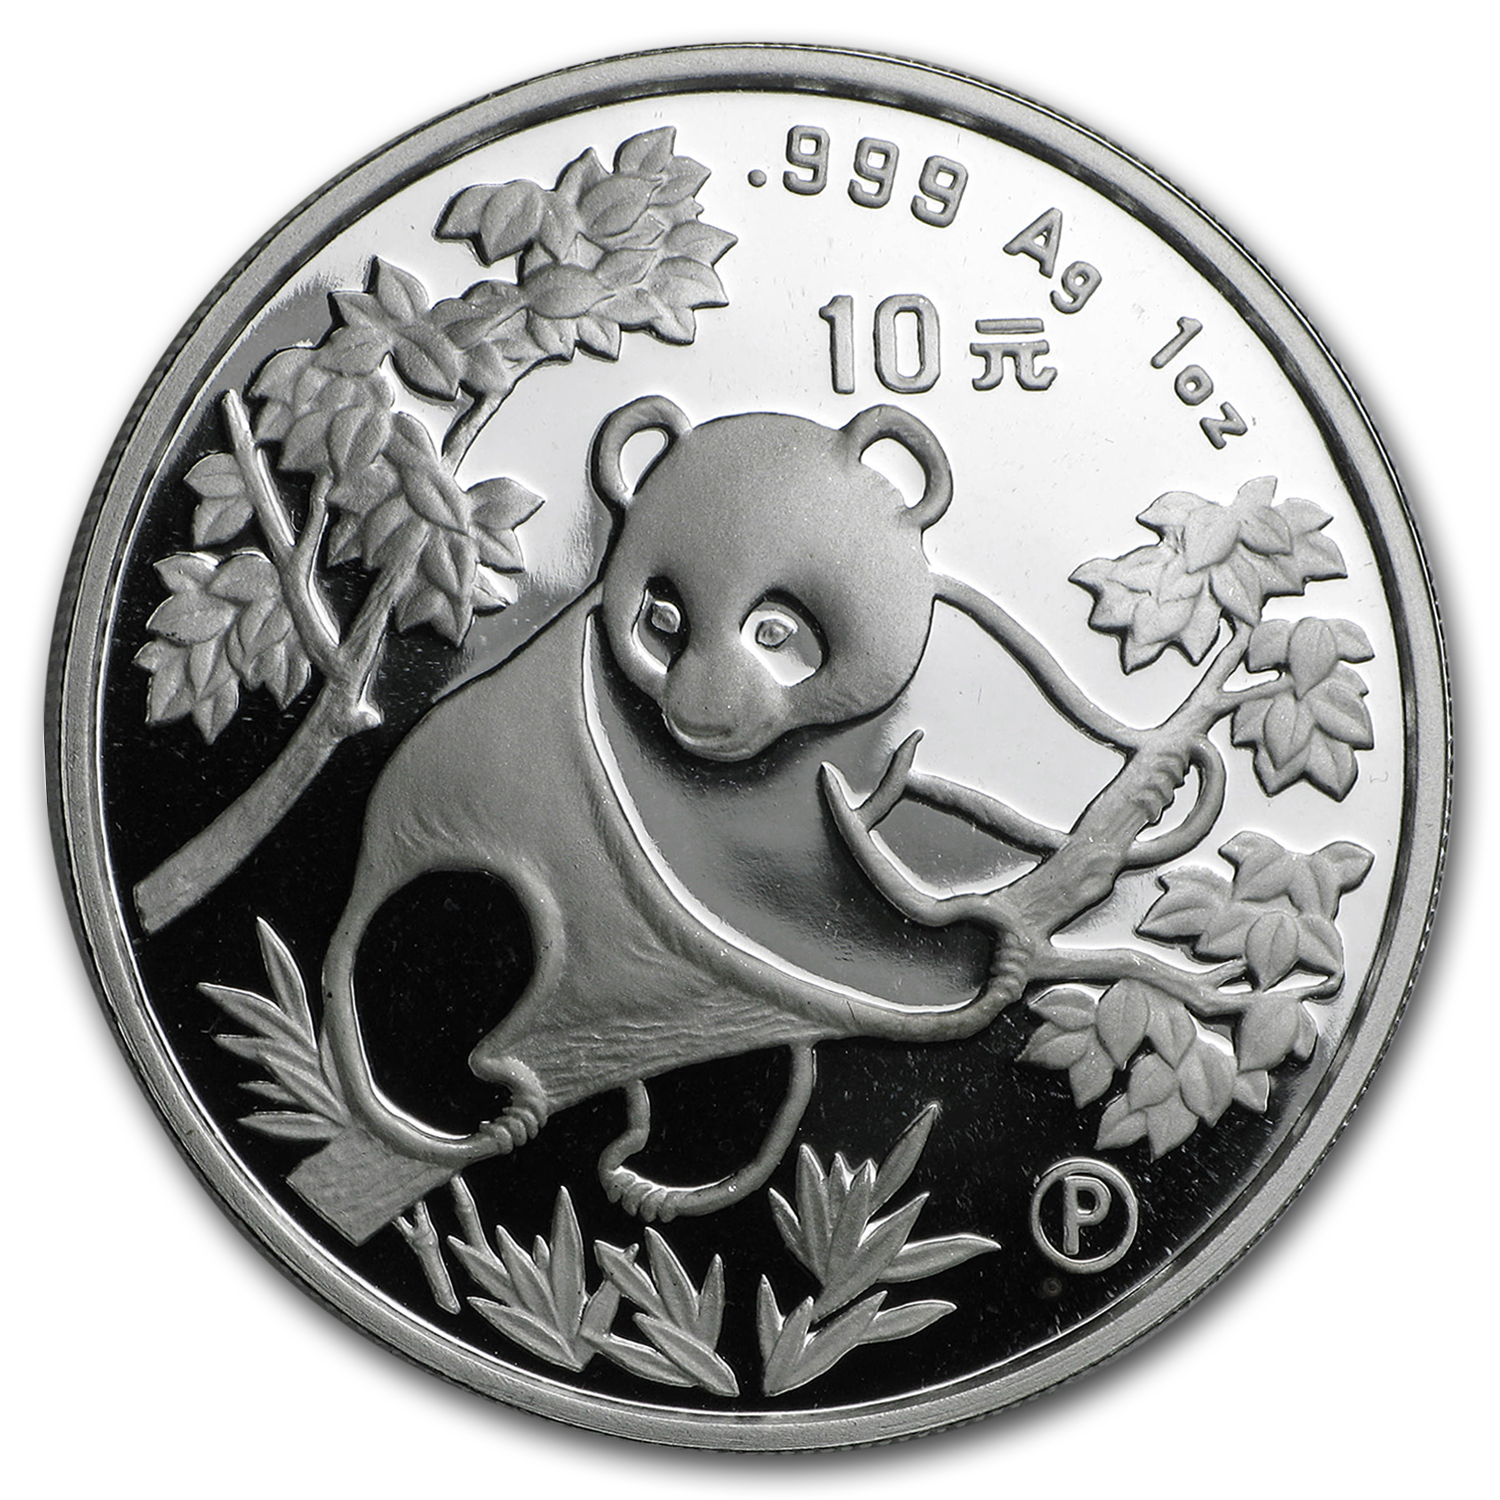 1992 China 1 oz Silver Panda Proof (w/Box & COA)